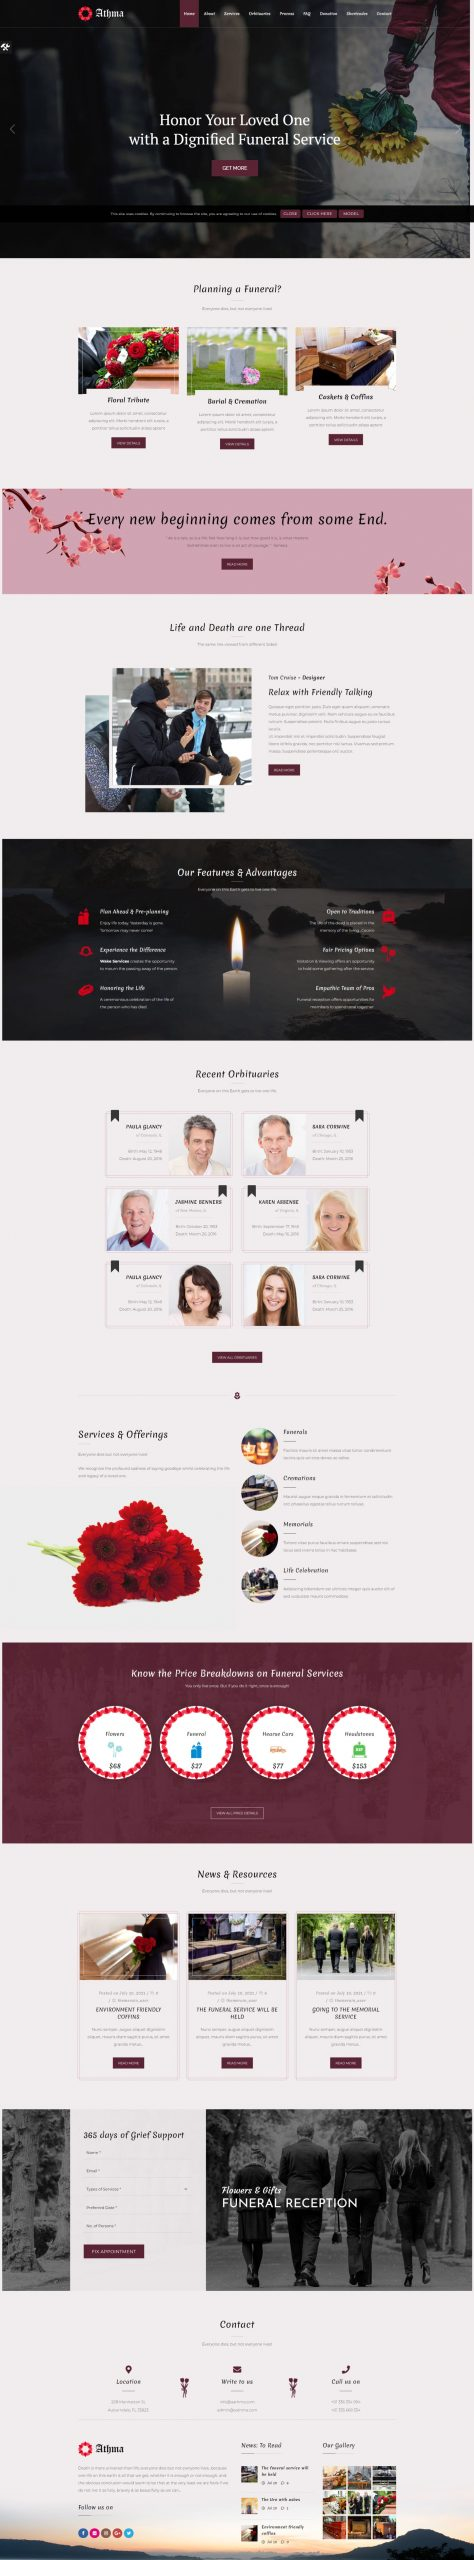 Athma - Creative Funeral HTML5 WordPress Theme With Animation Effects